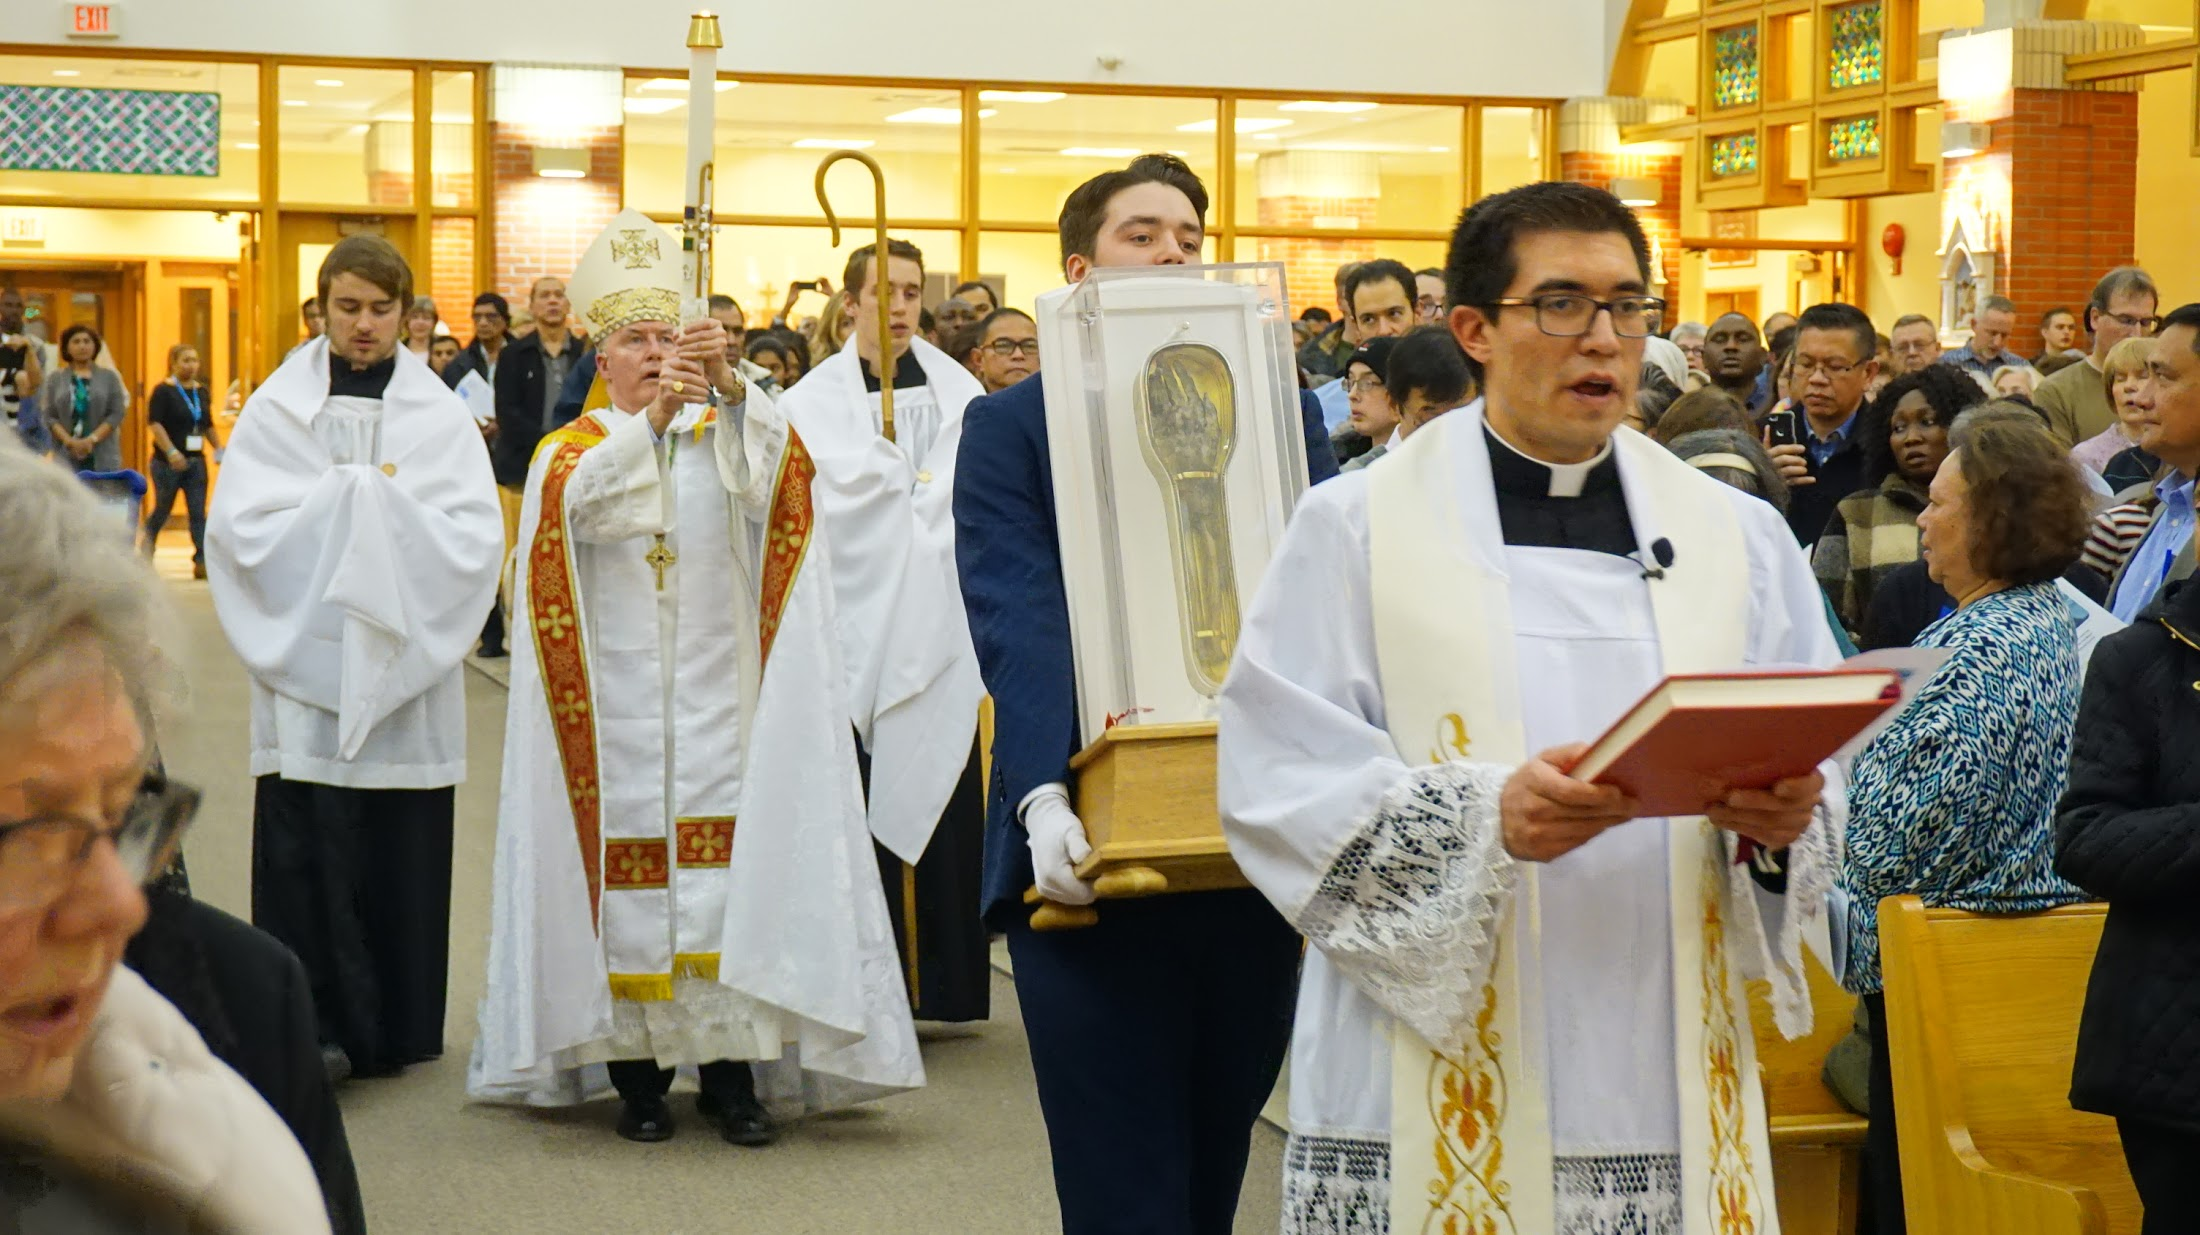 Nearly 10,000 pilgrims visit St Francis Xavier's relic in Calgary